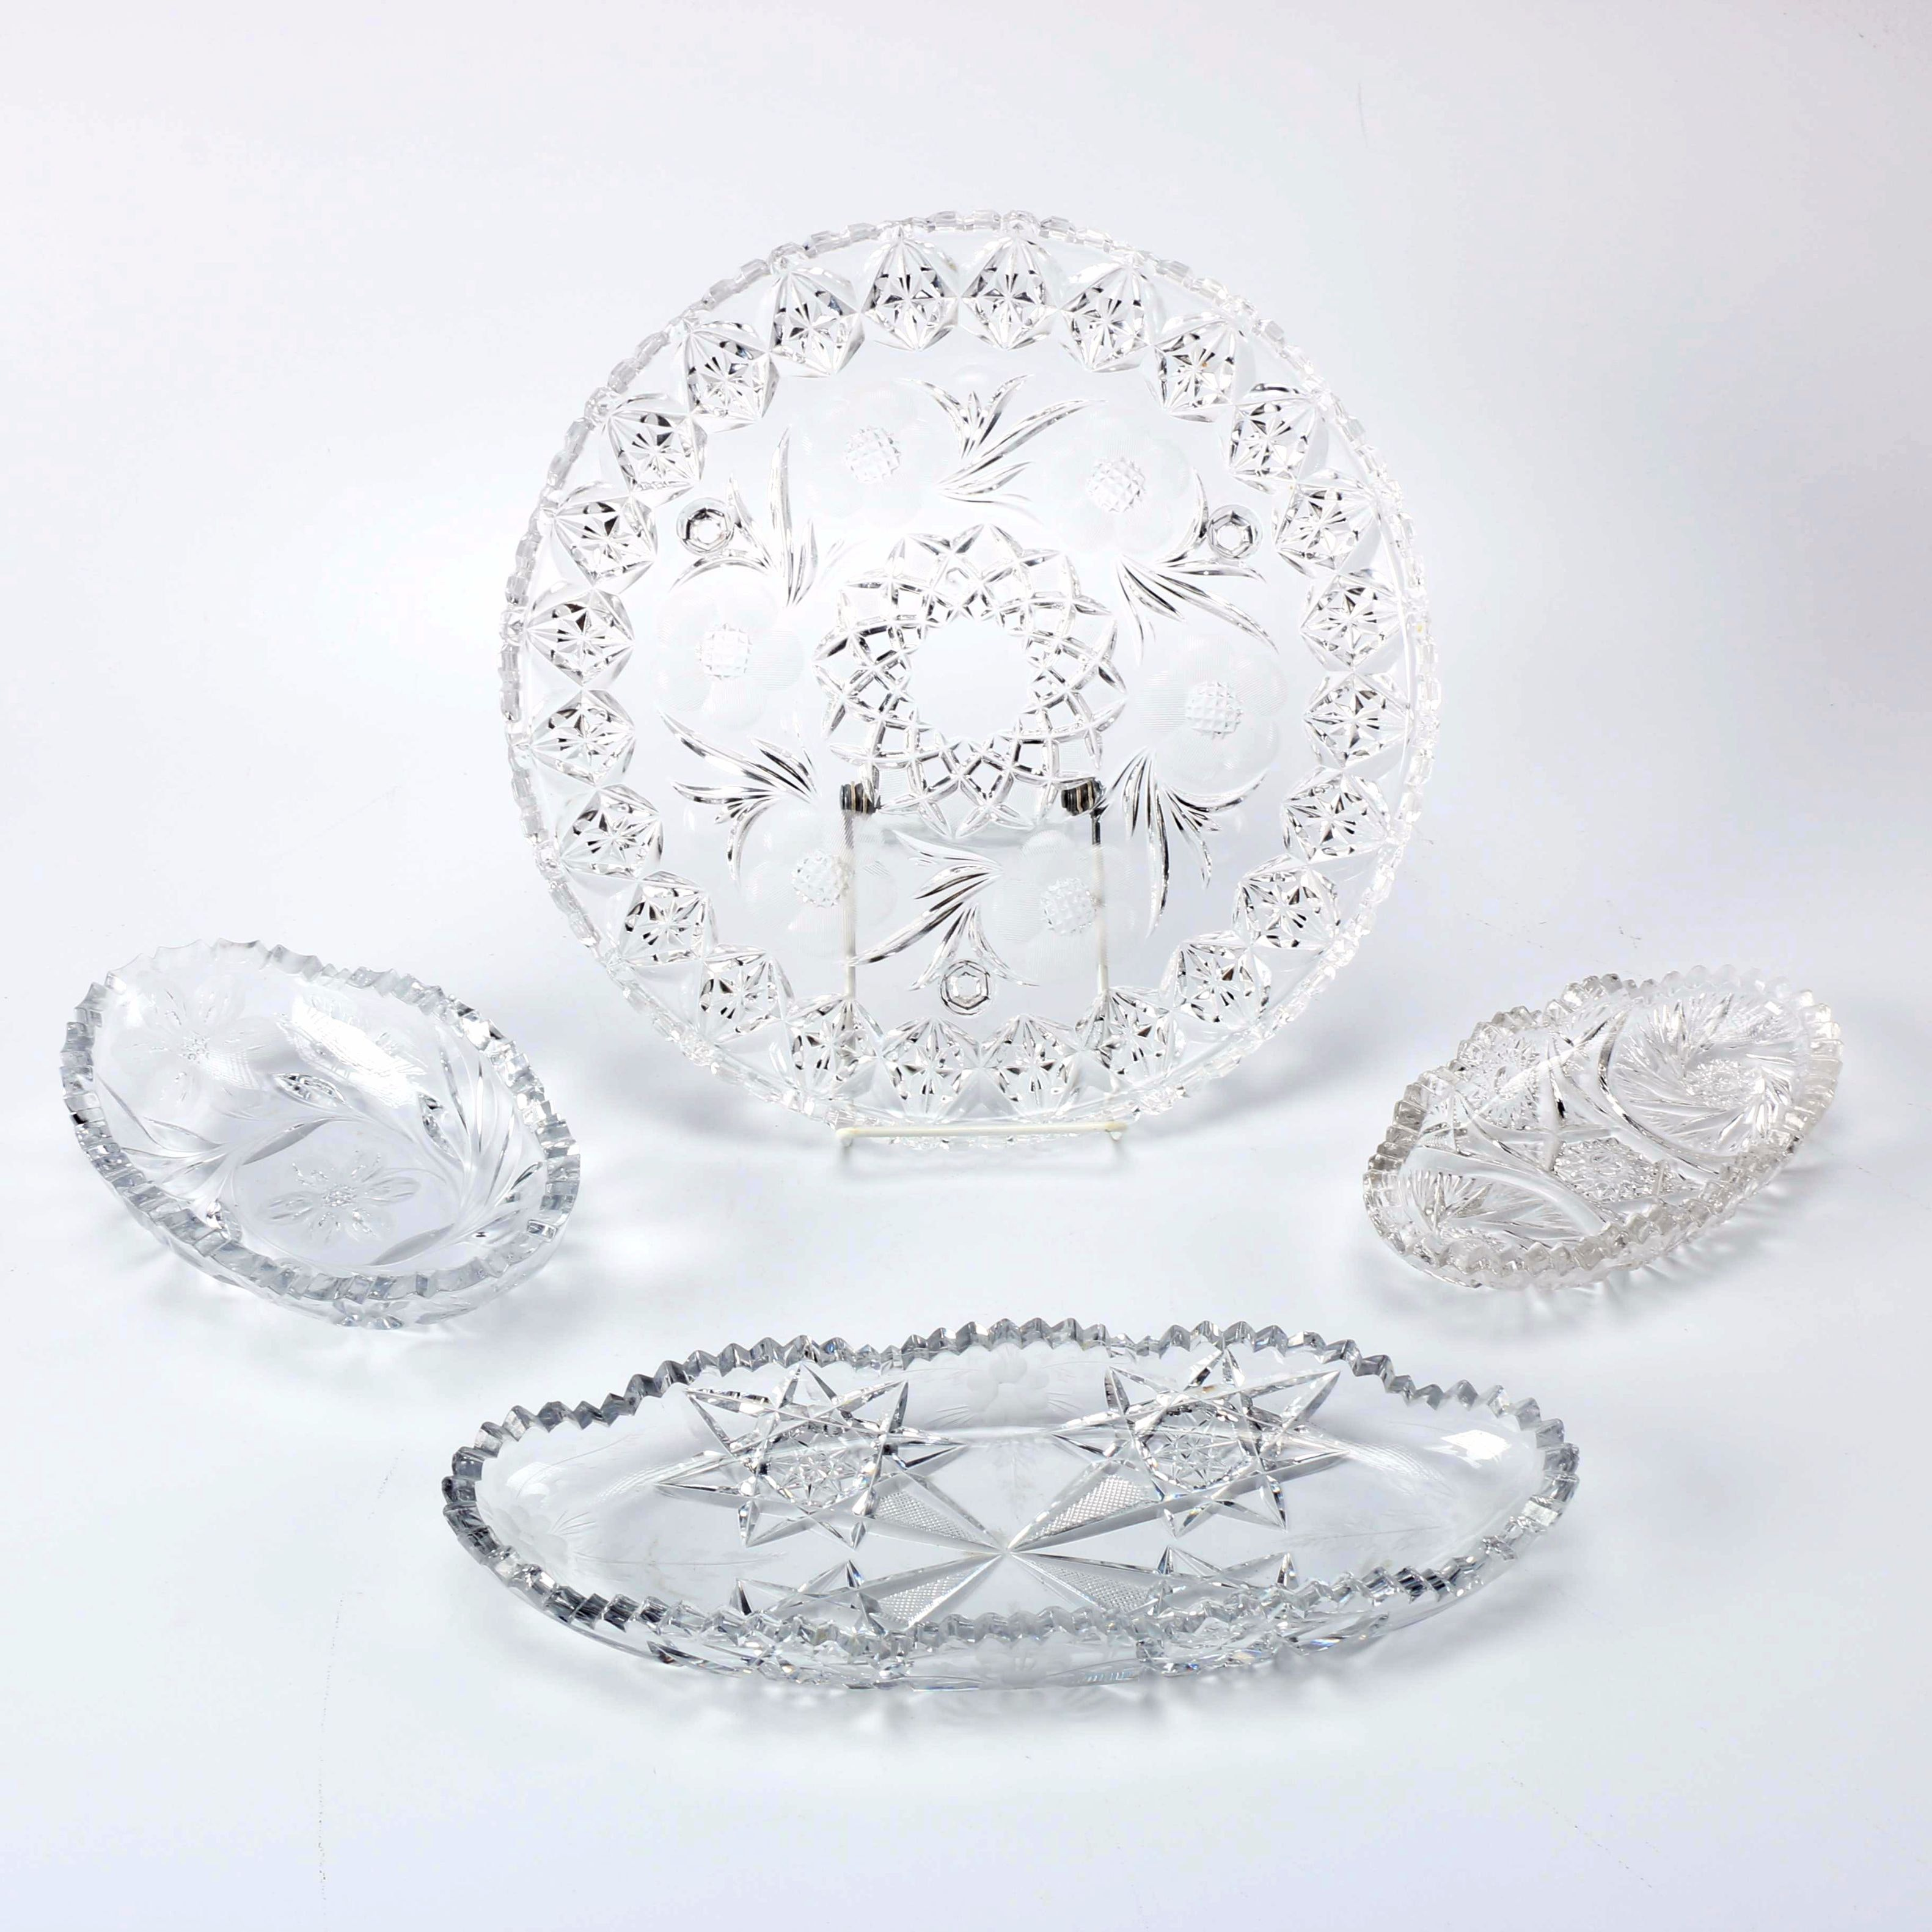 Collection of Crystal and Brilliant Cut Serving Ware